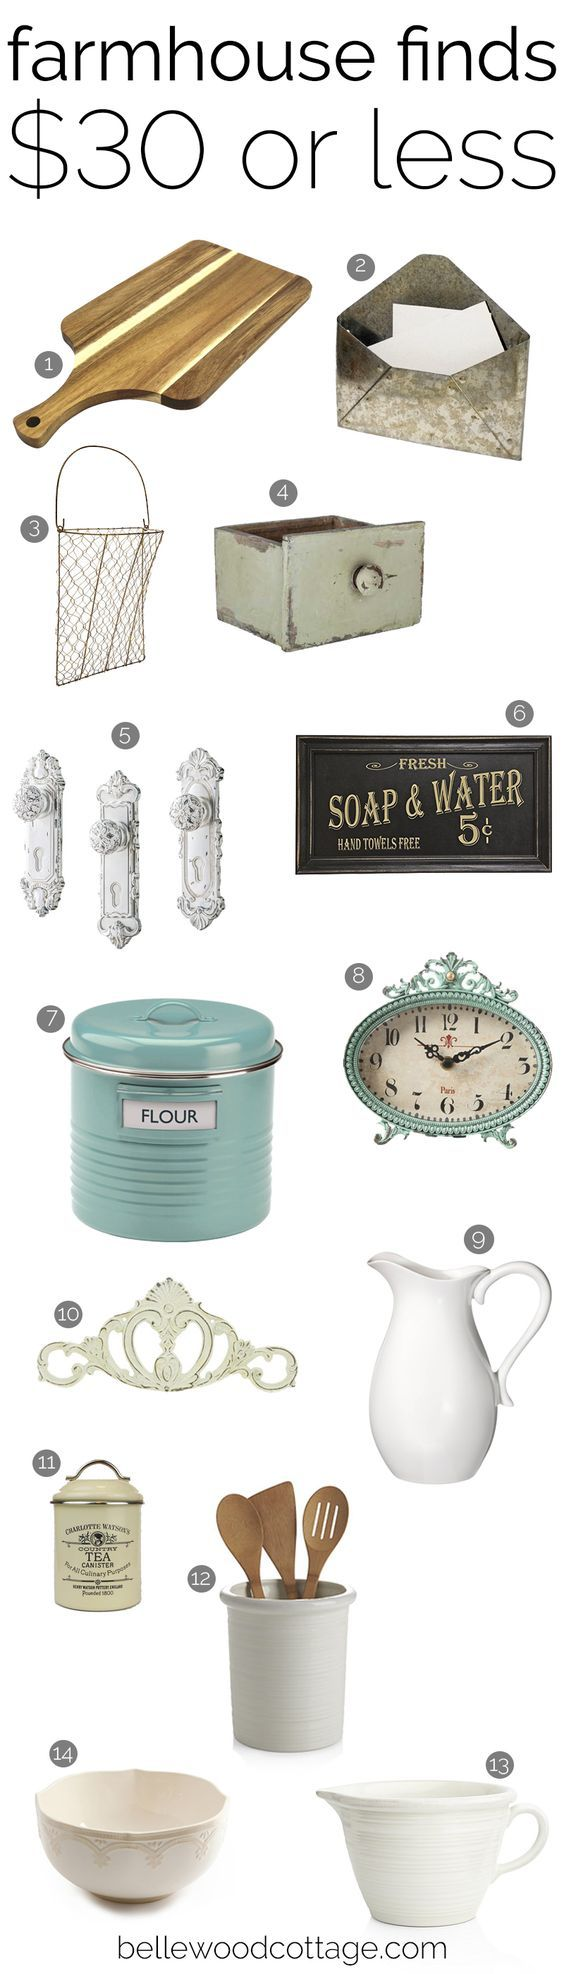 Add farmhouse style to your home even when you're on a budget! All these finds are full of character and are $30 or less!